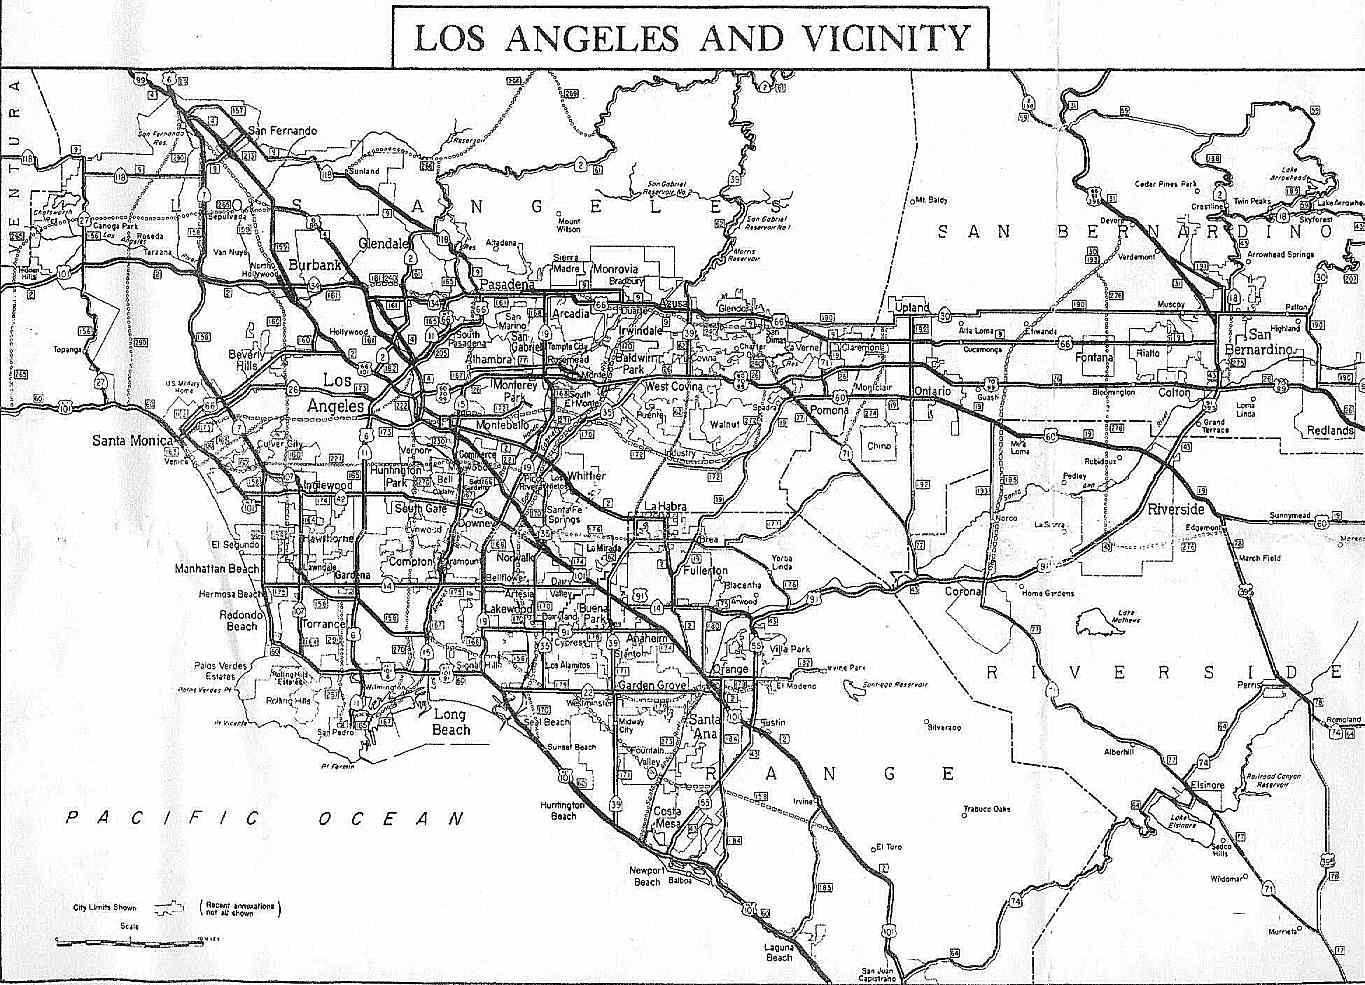 Los Angeles Freeways Stonebrown Design California Highways Us Freeway Map